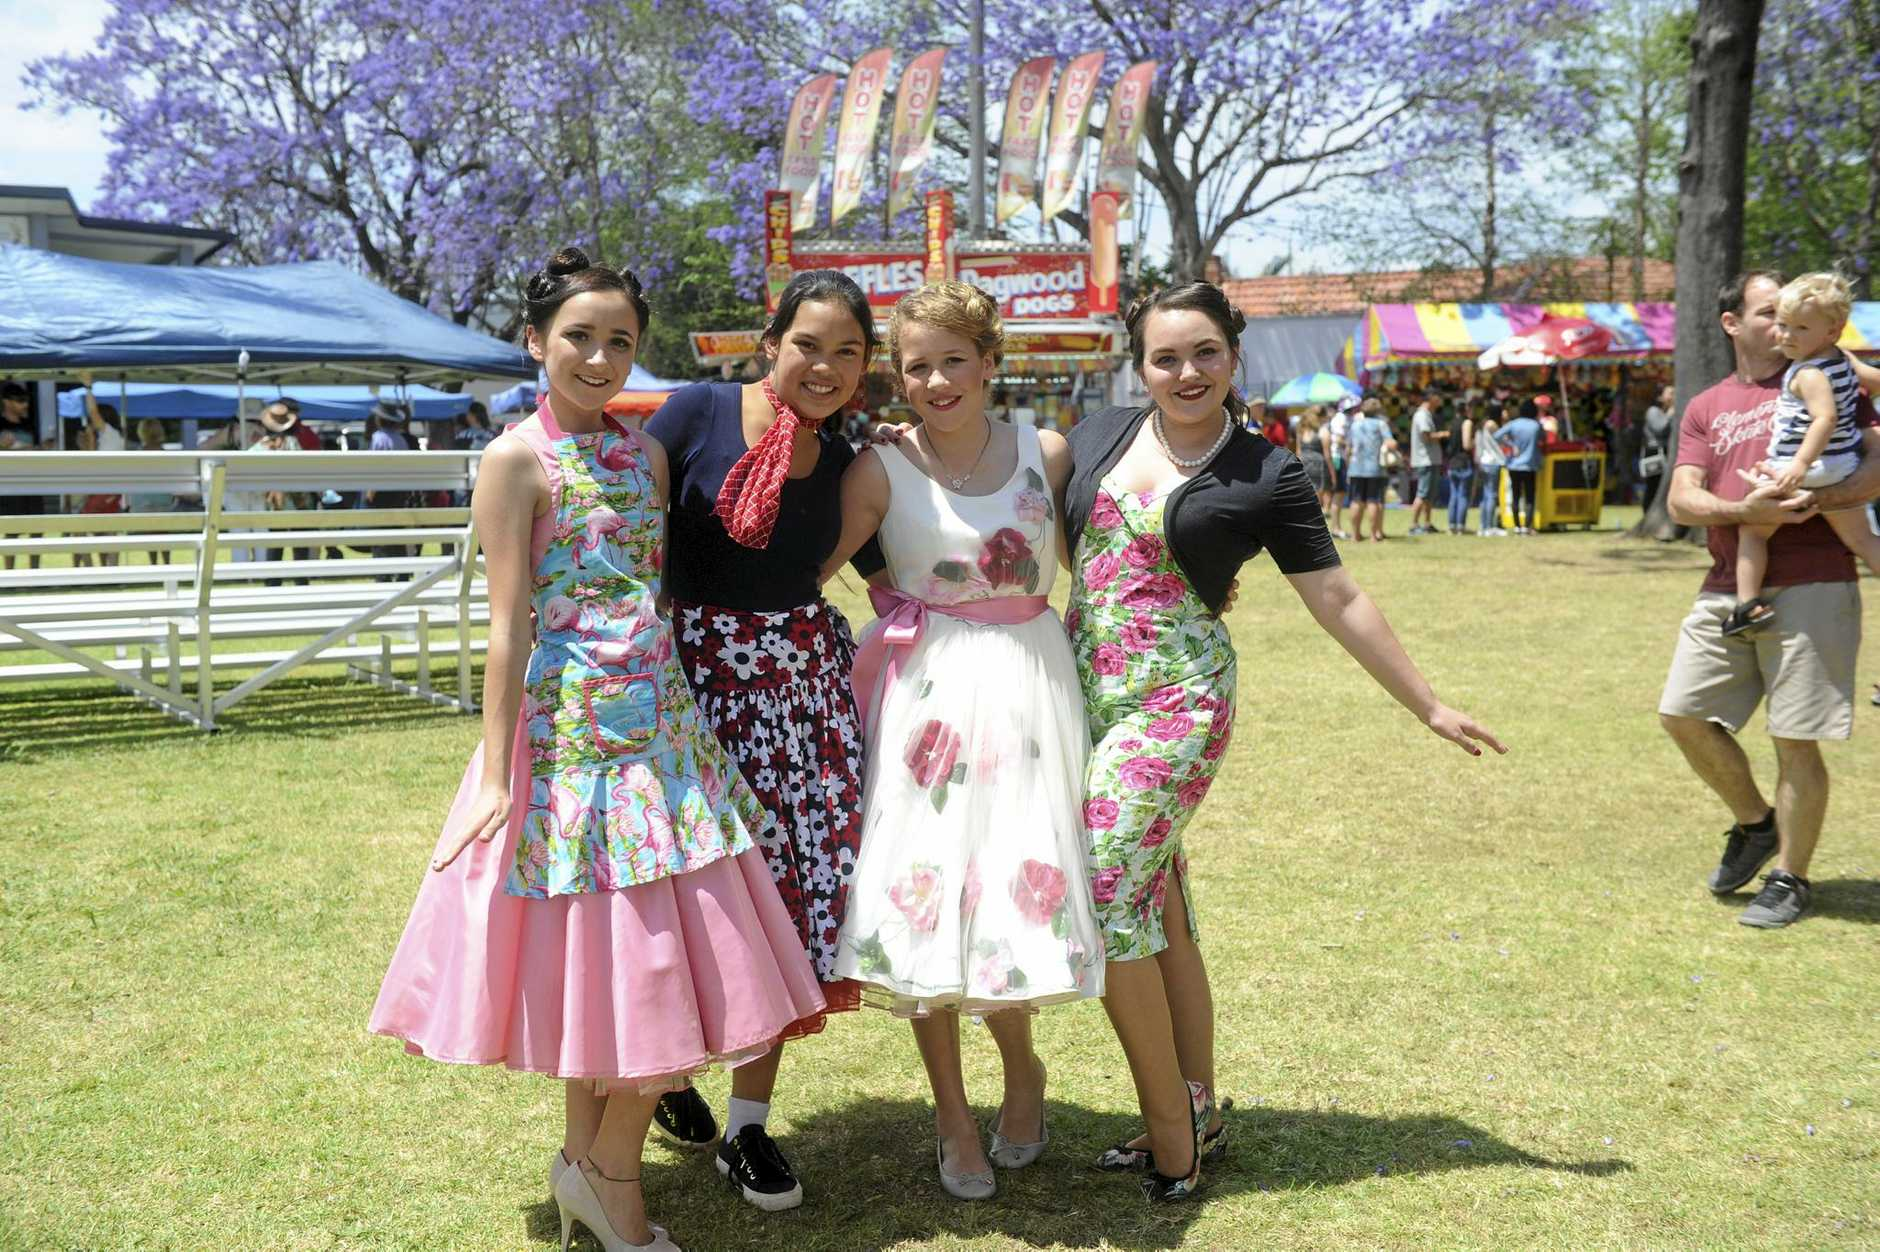 Bernie White, 16, Emmanuelle Ramos, 13, Bridie White, 13 and Charlotte Hanson don their 50s frocks for Sunday's Retrofest event.